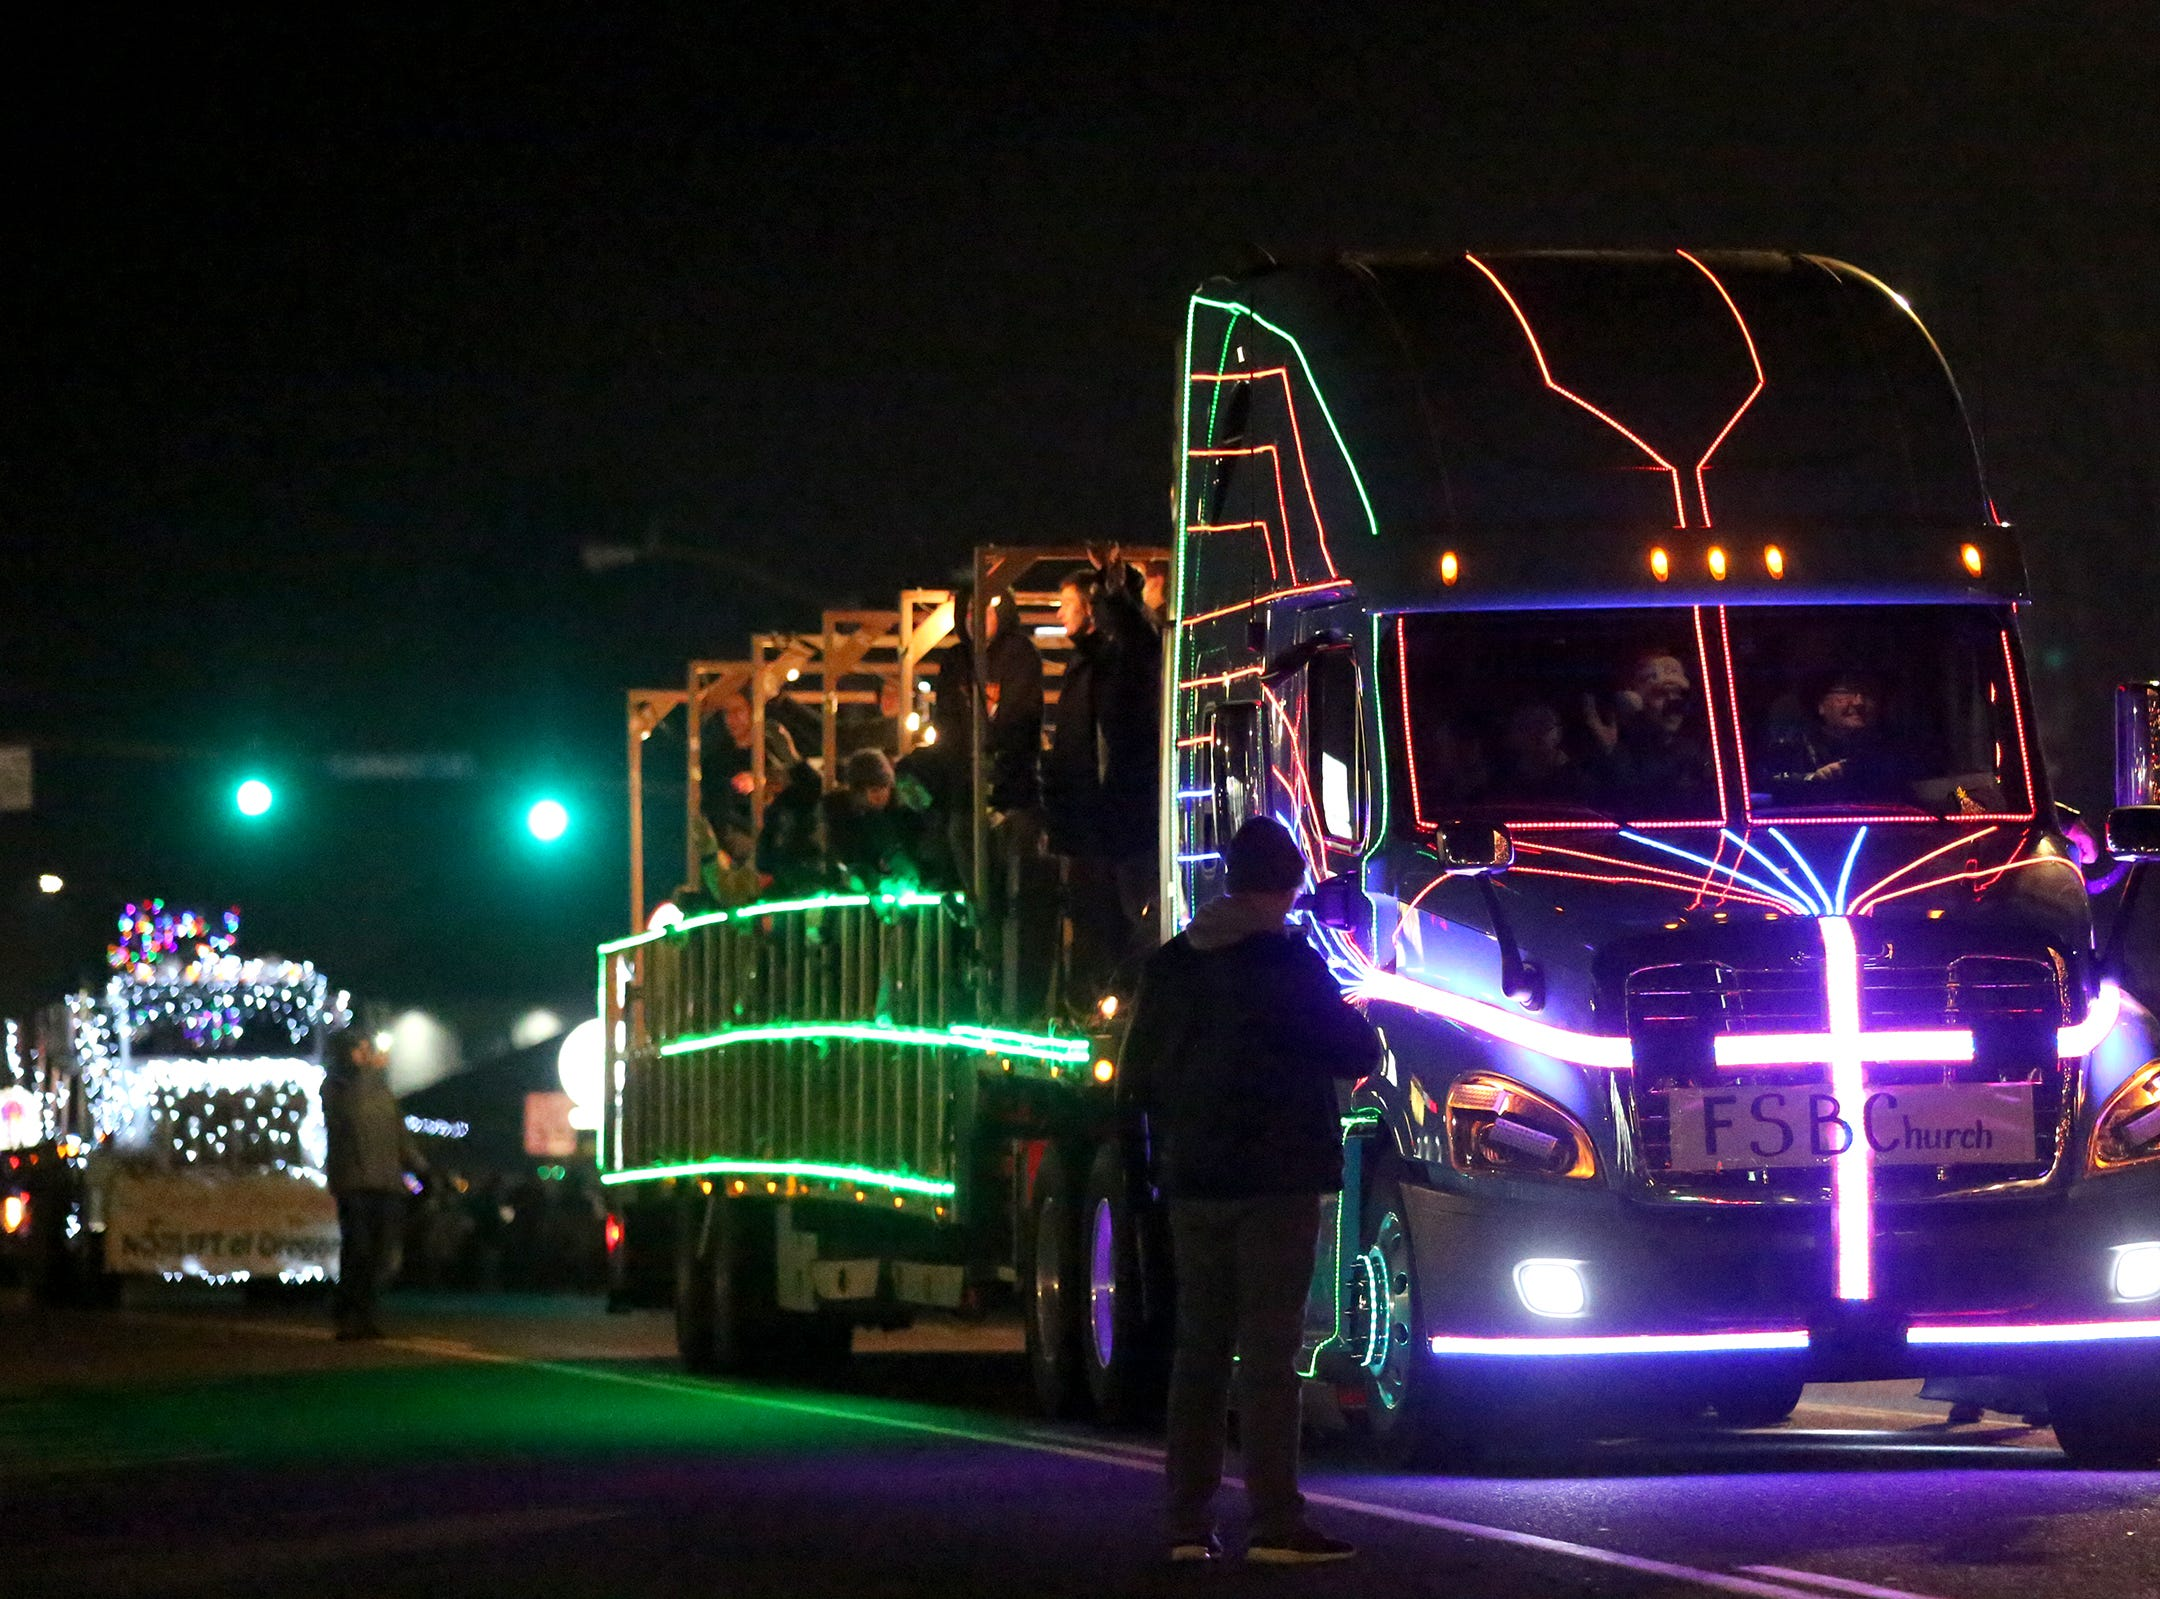 FSB Church showcases their float during the Keizer Holiday Lights Parade in Keizer on Saturday, Dec. 8, 2018.